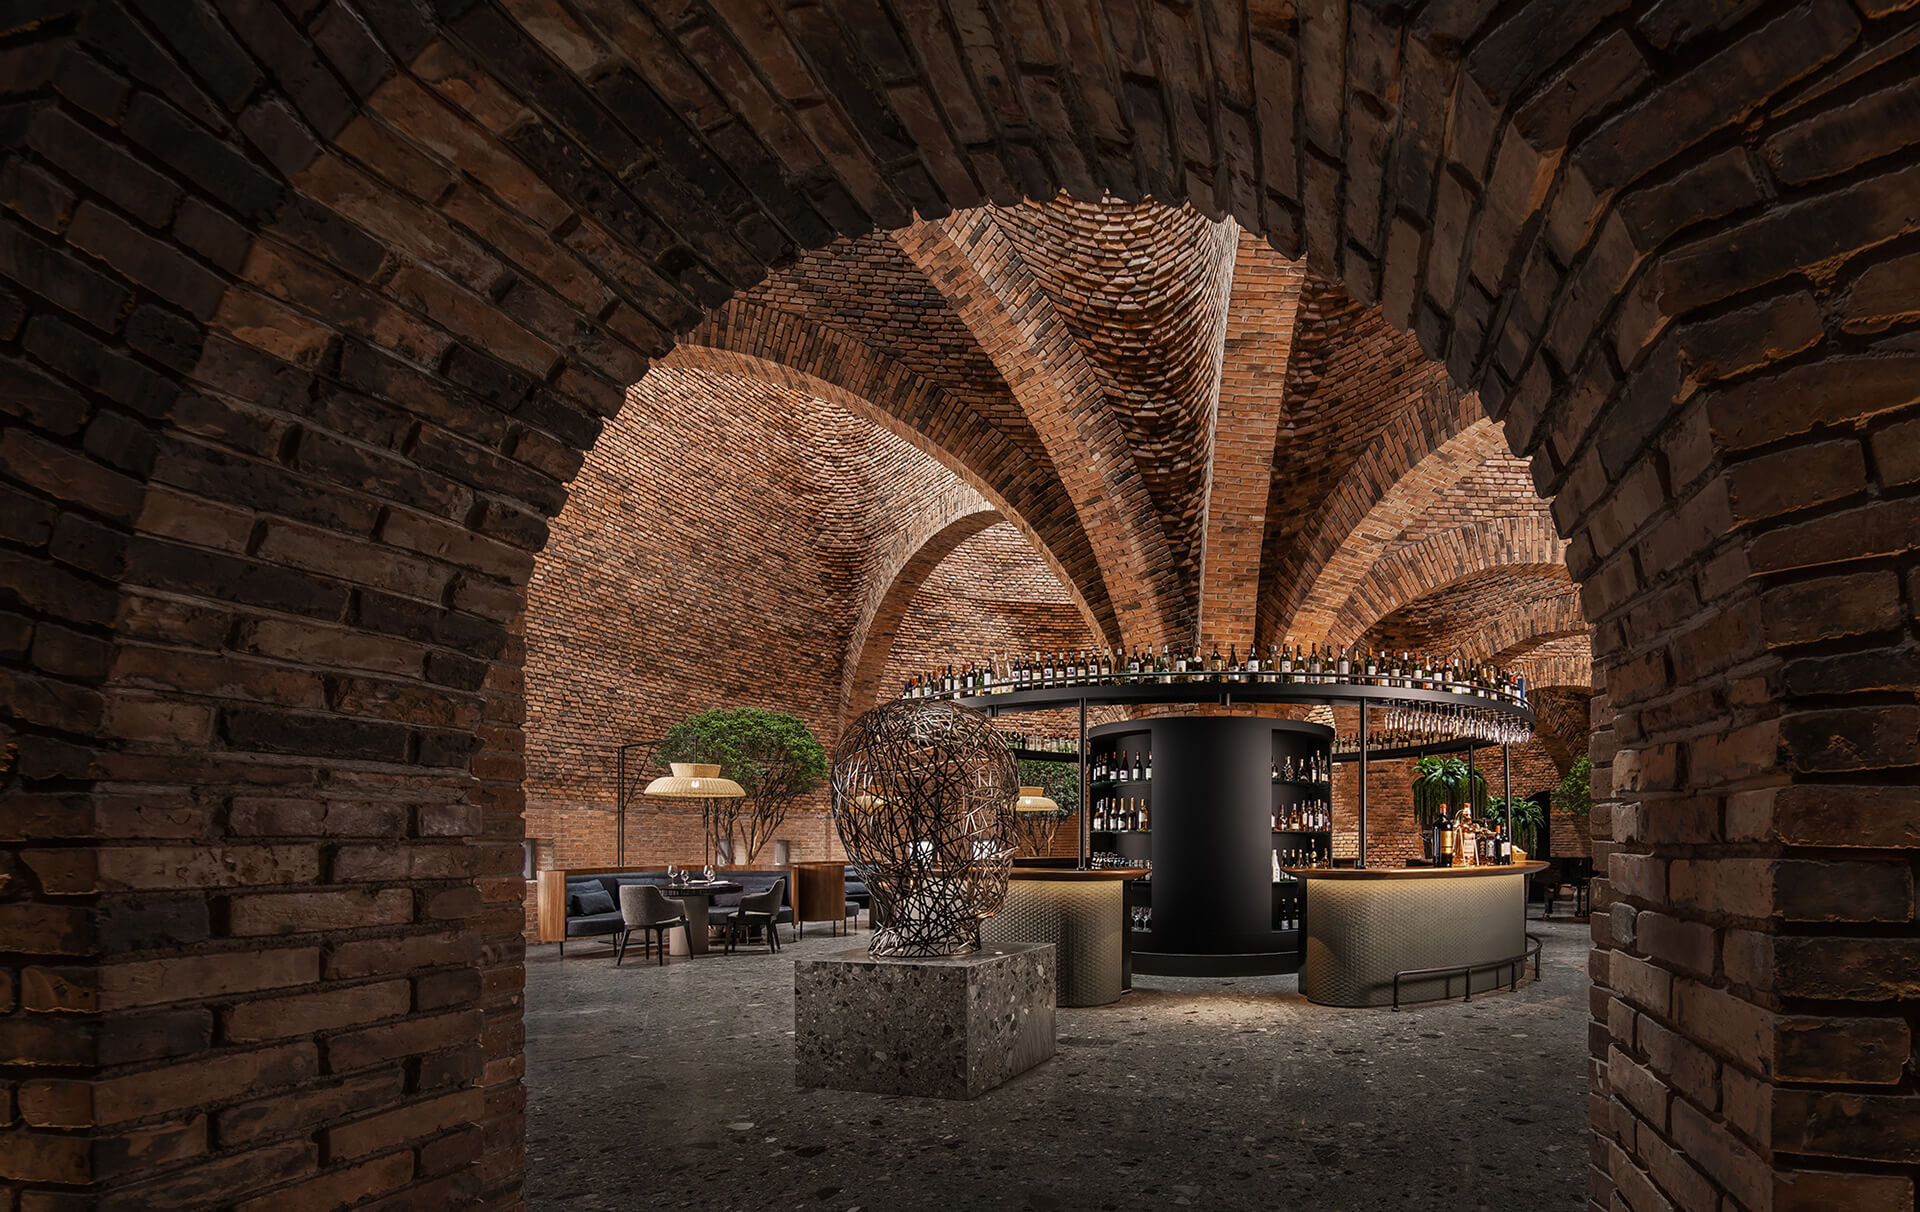 The restaurant displays a classy yet rustic setting | 50% Cloud Artists Lounge by Cheng Chung Design | STIRworld